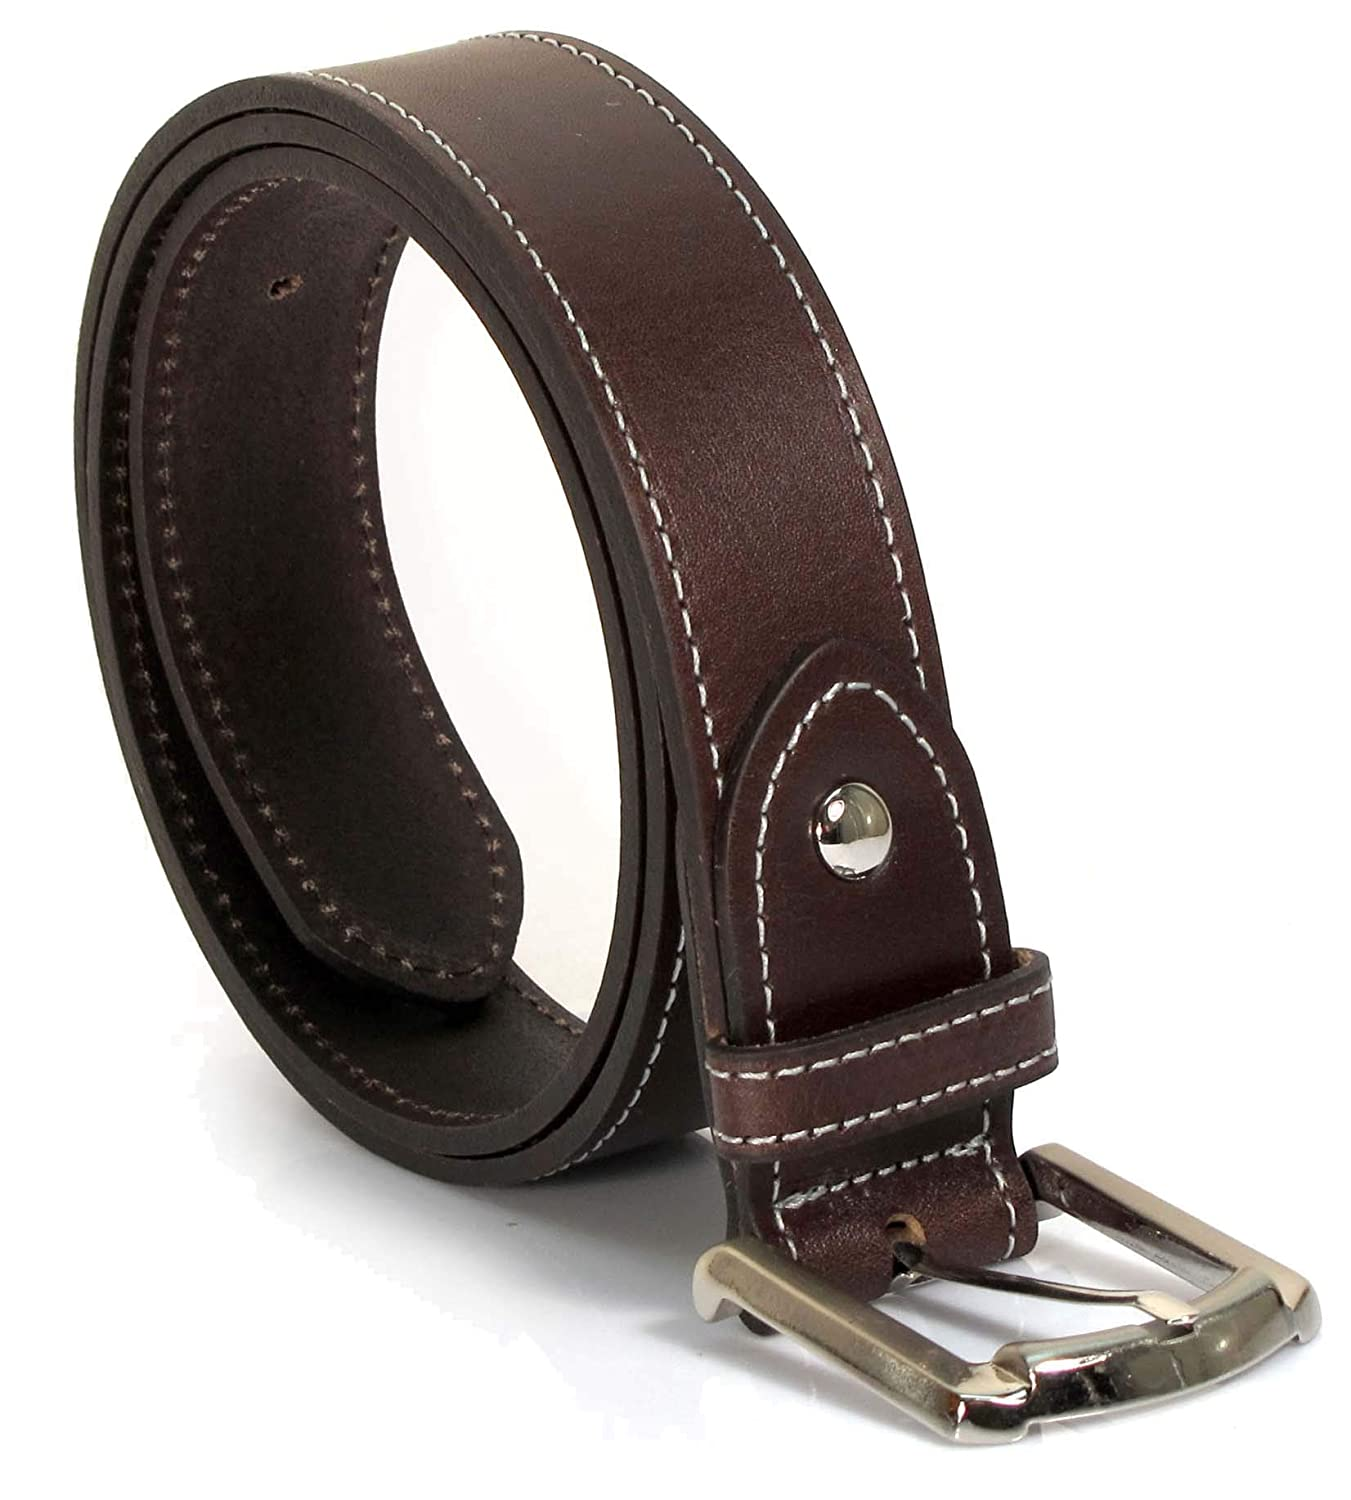 Mens Real Genuine Leather Belt Black Brown White 1.25 Wide S-XL Casual Jeans CU9